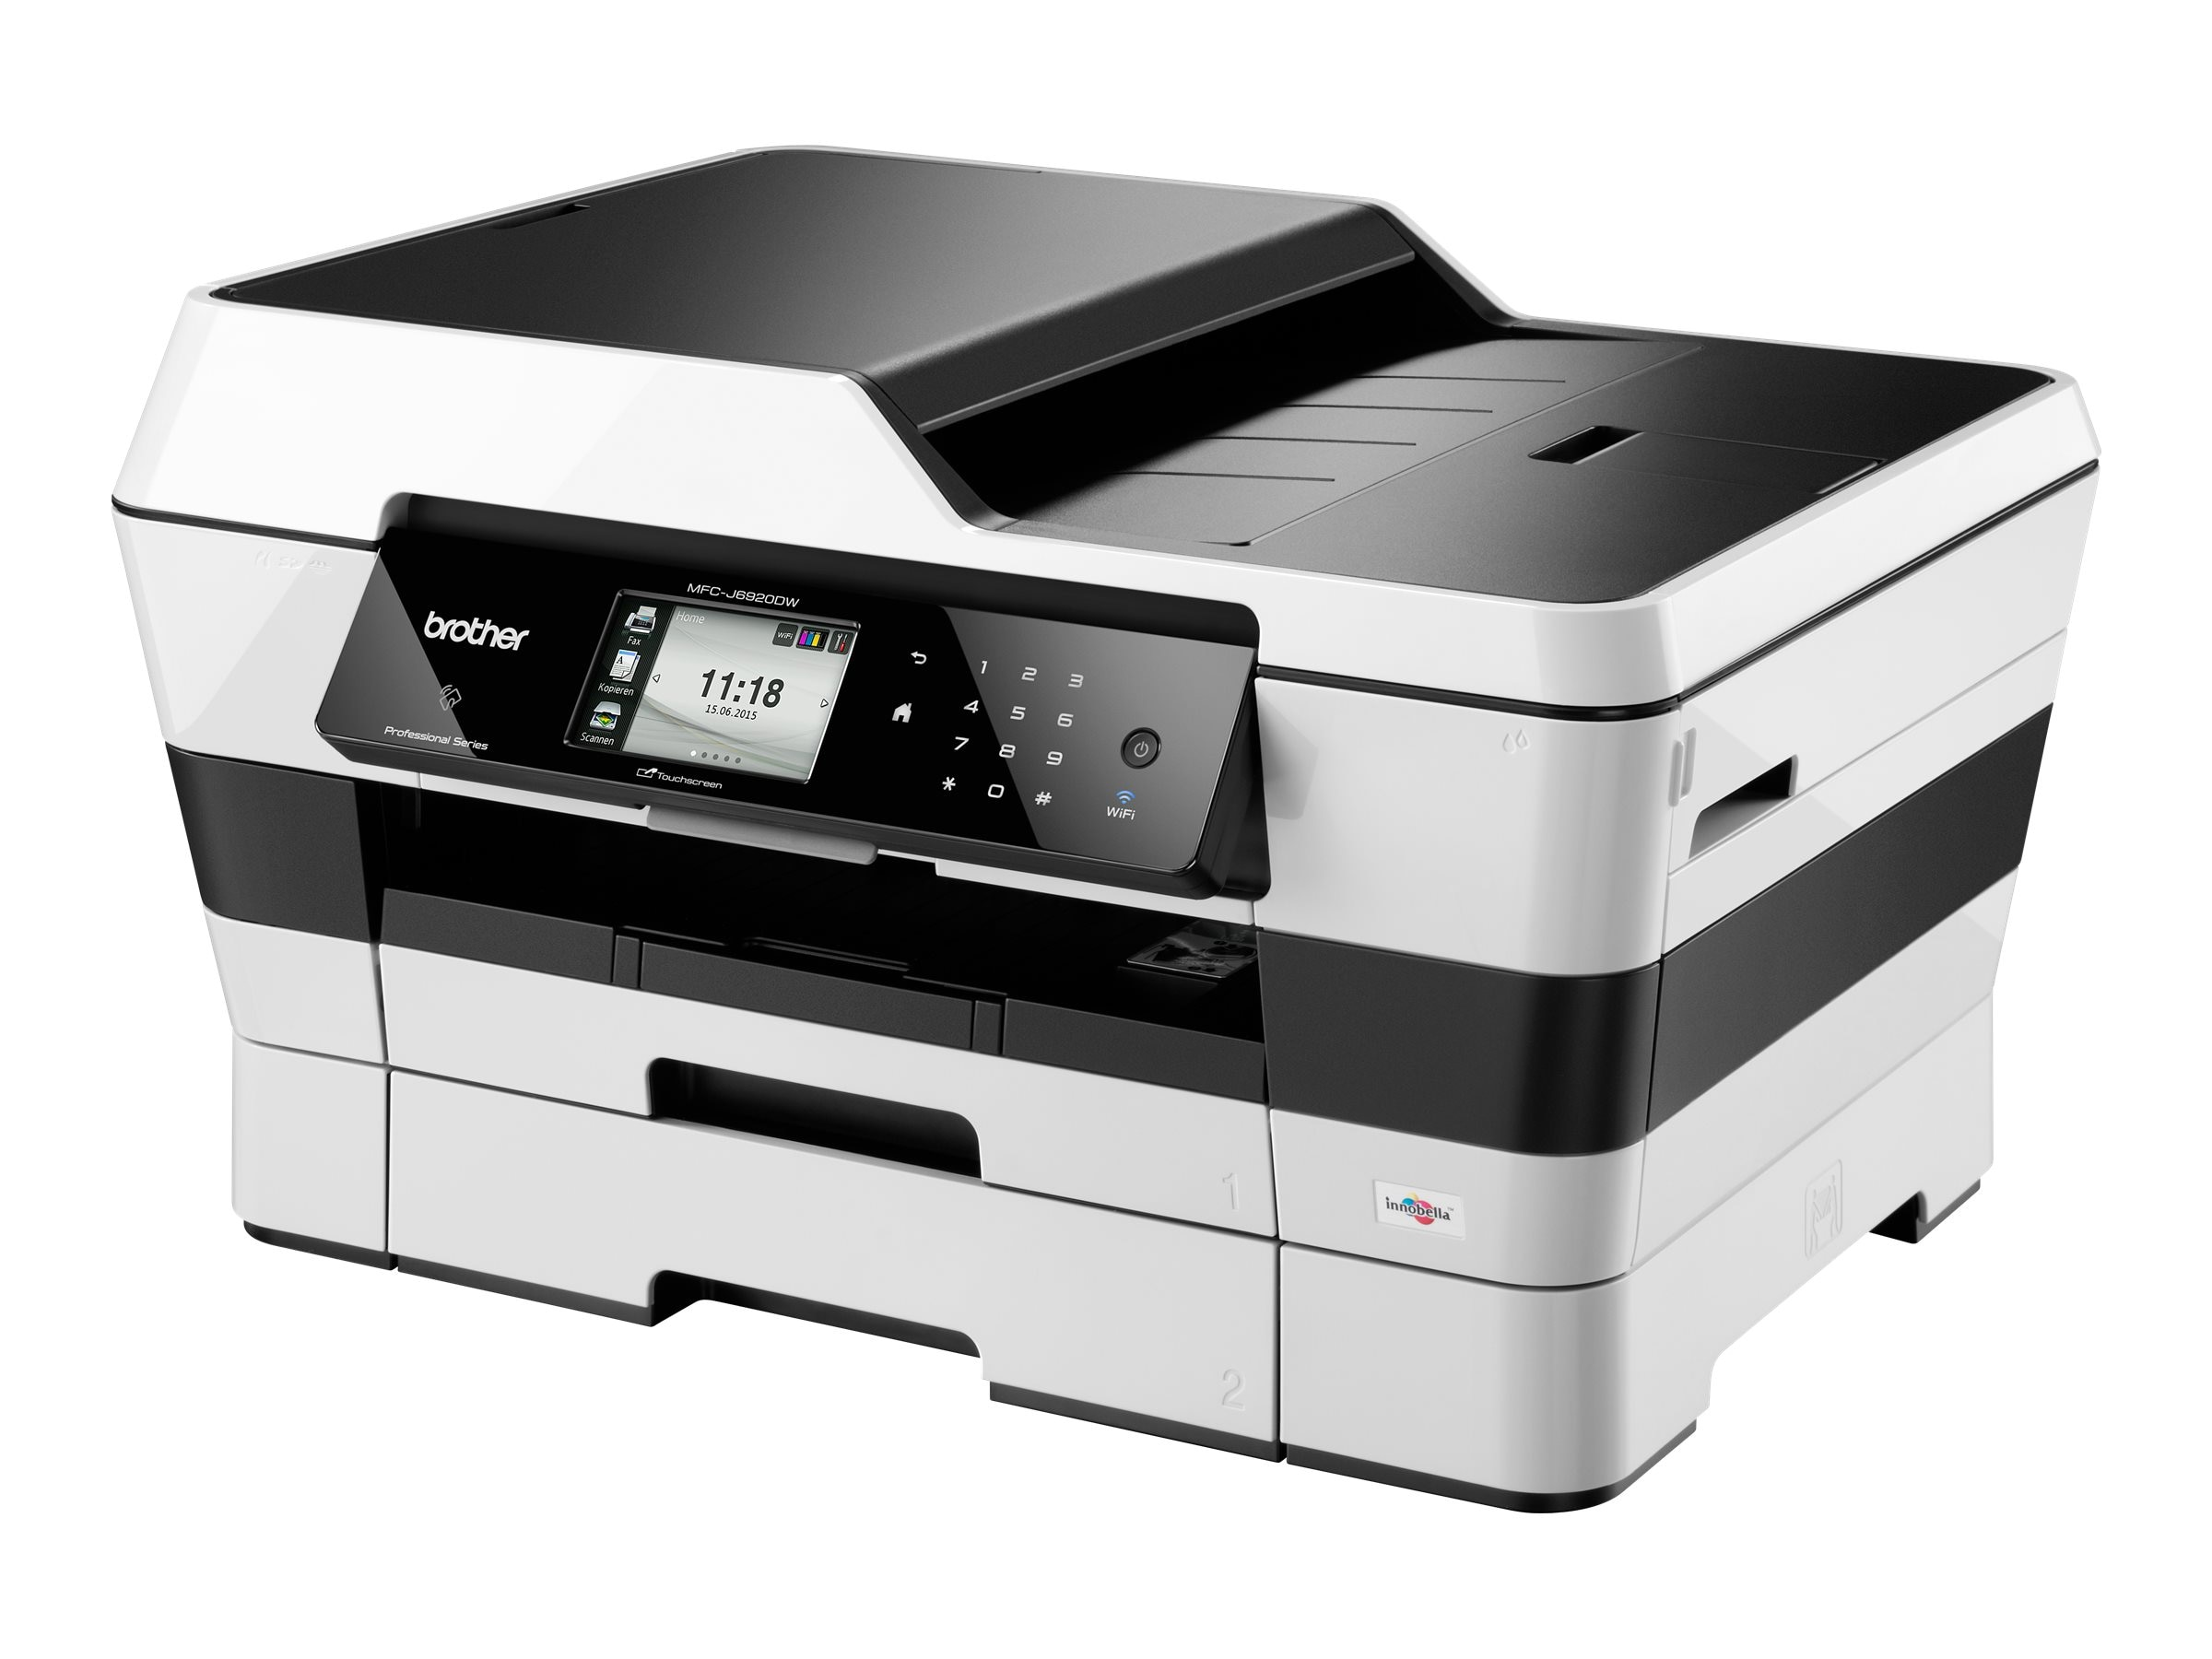 Brother MFC-J6920DW Inkjet All-In-One